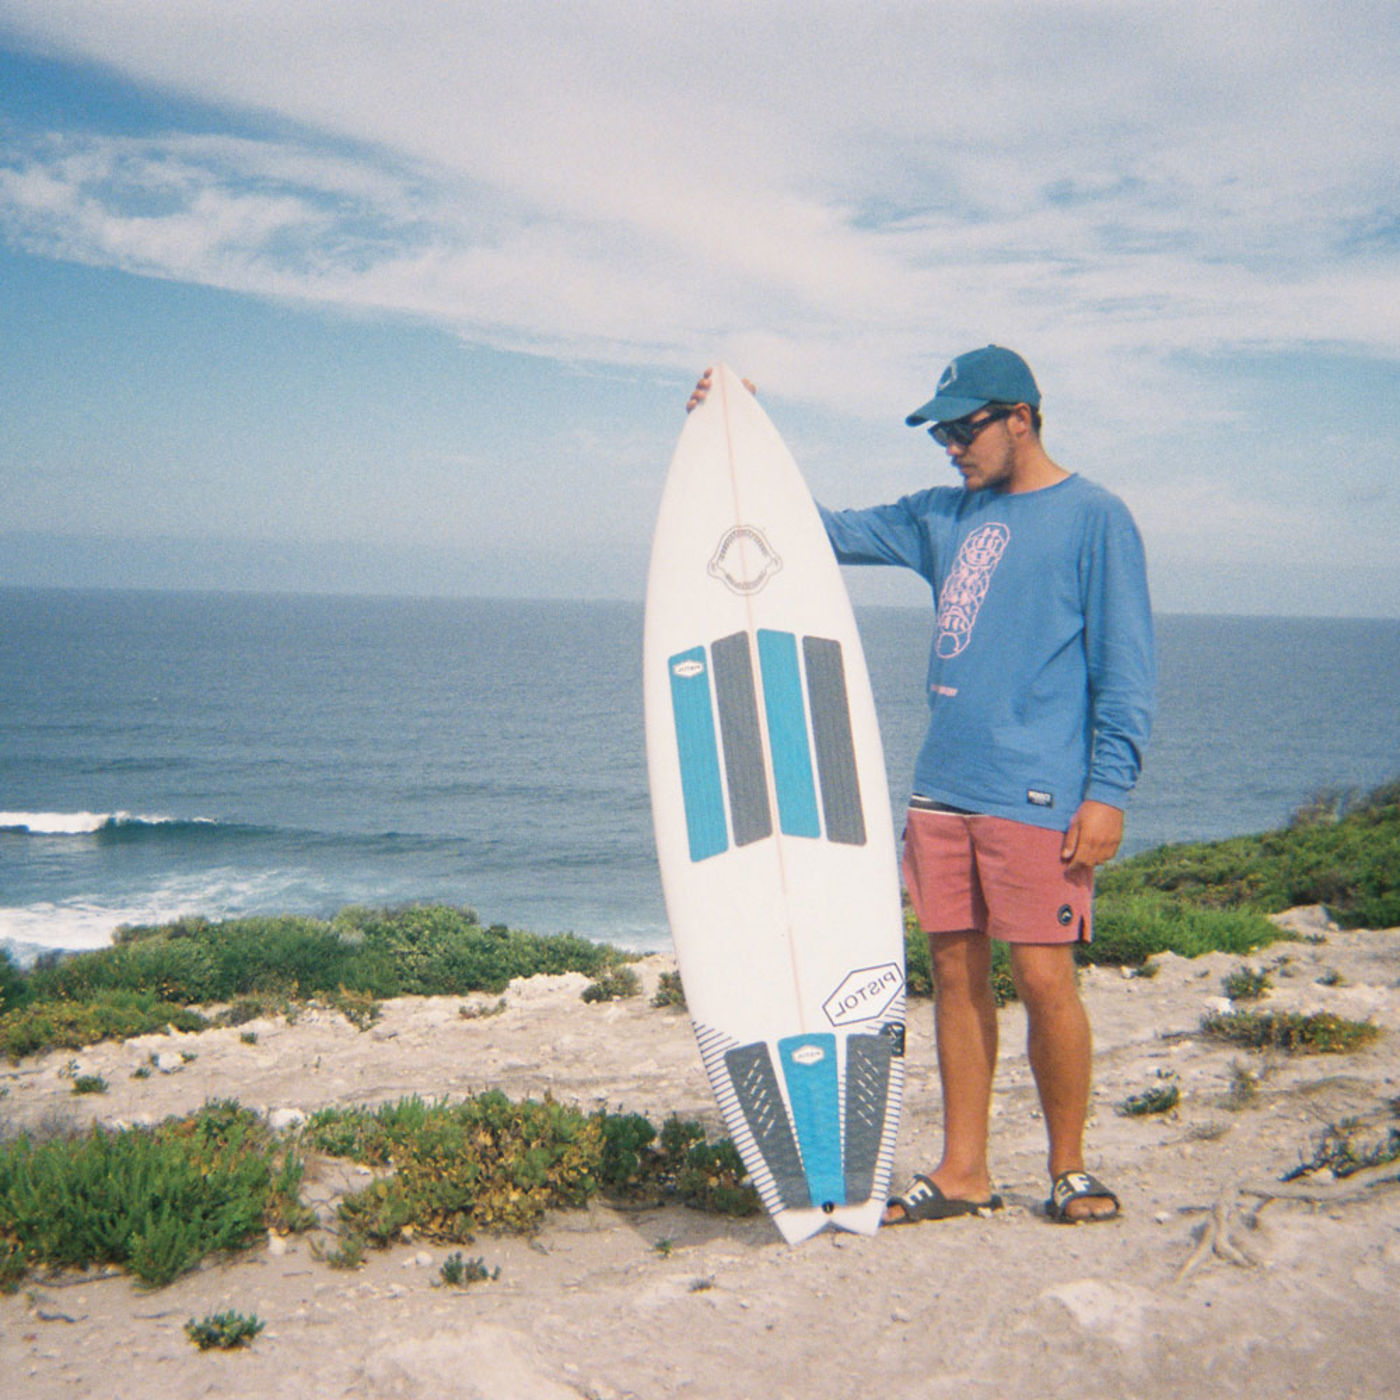 Nick Muntz - WA young gun from Pistol Surf